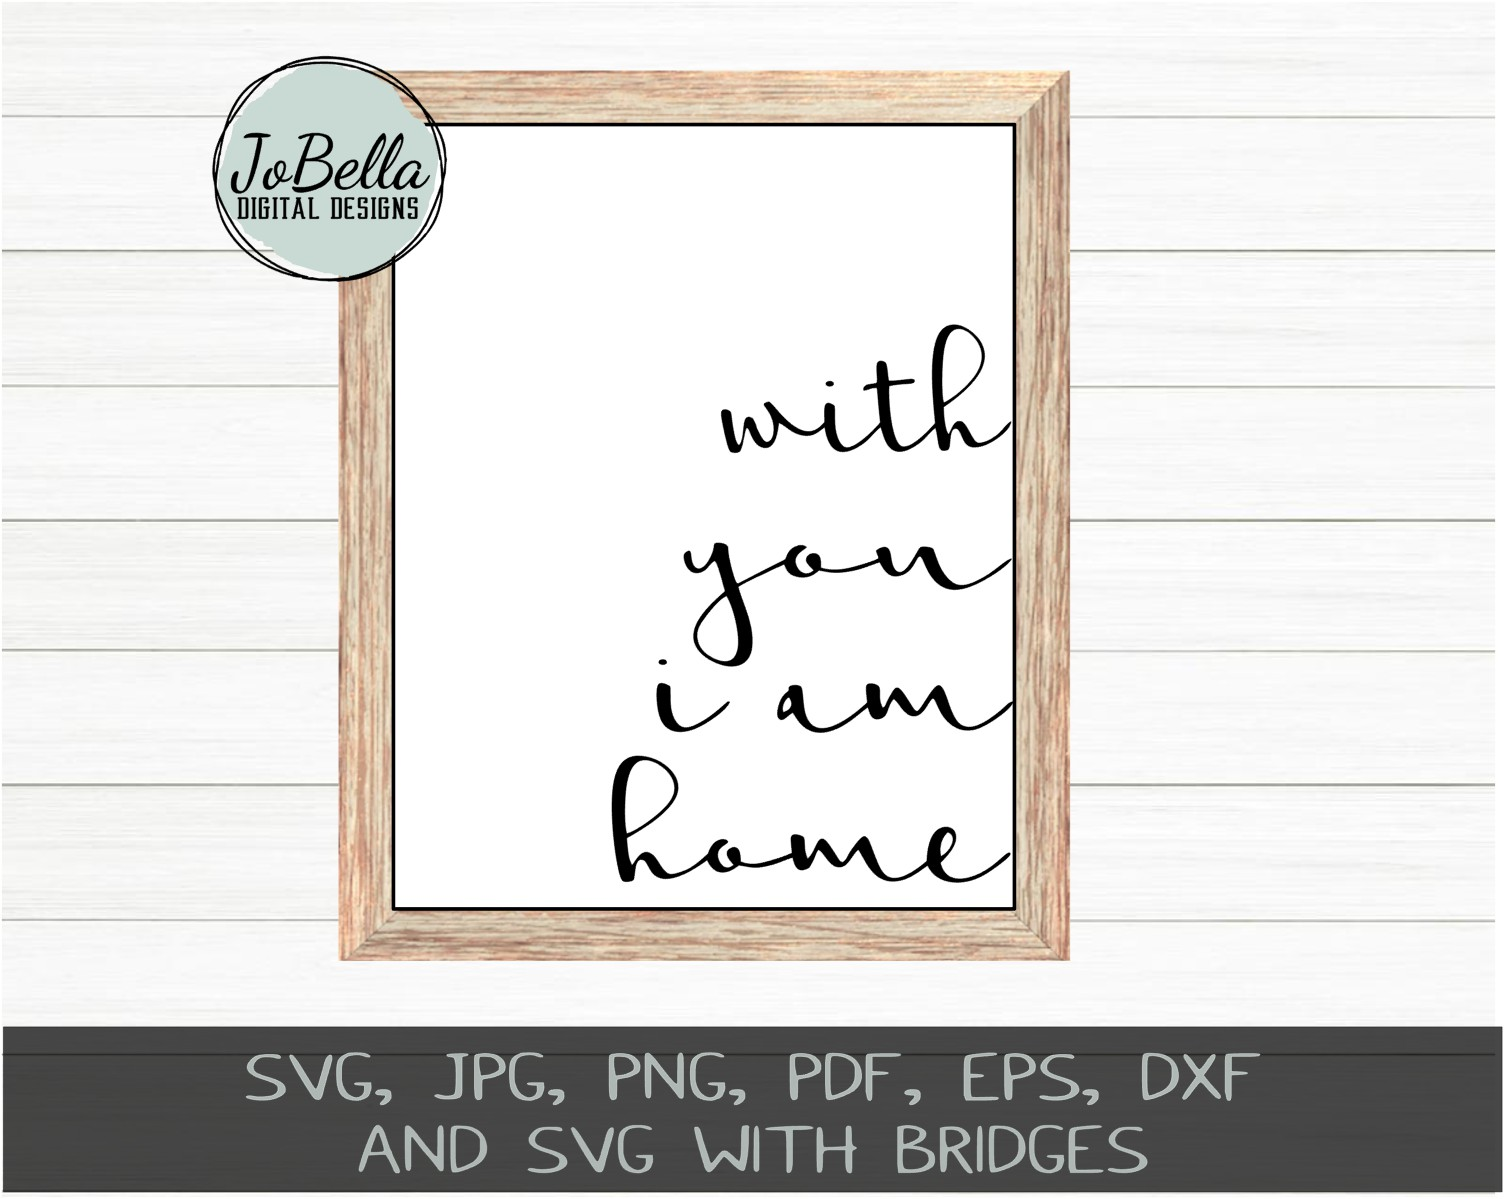 Wedding and Romance SVG Bundle, Sublimation PNGs, and Prints example image 16